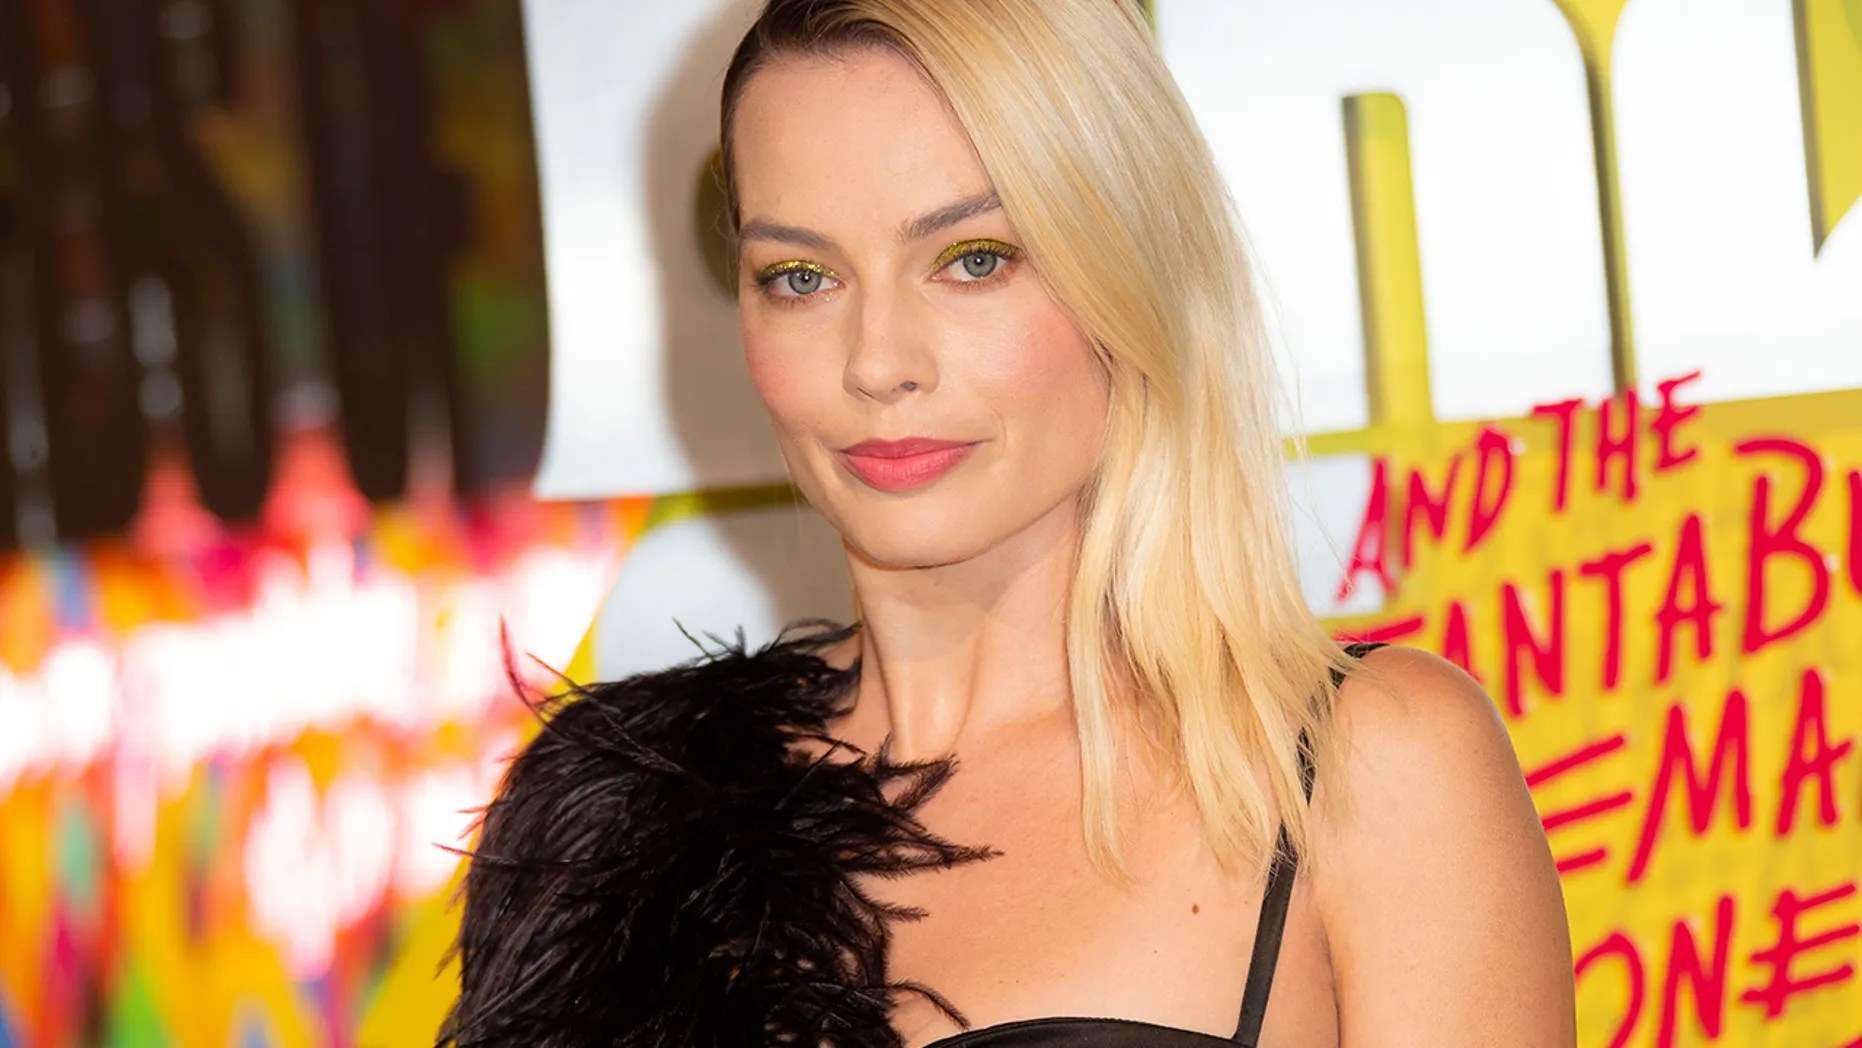 Actress Margot Robbie poses for photographers upon arrival at the world premiere of 'Birds of Prey' in London, Wednesday, Jan 29, 2020. (Joel C Ryan/Invision/AP, File)